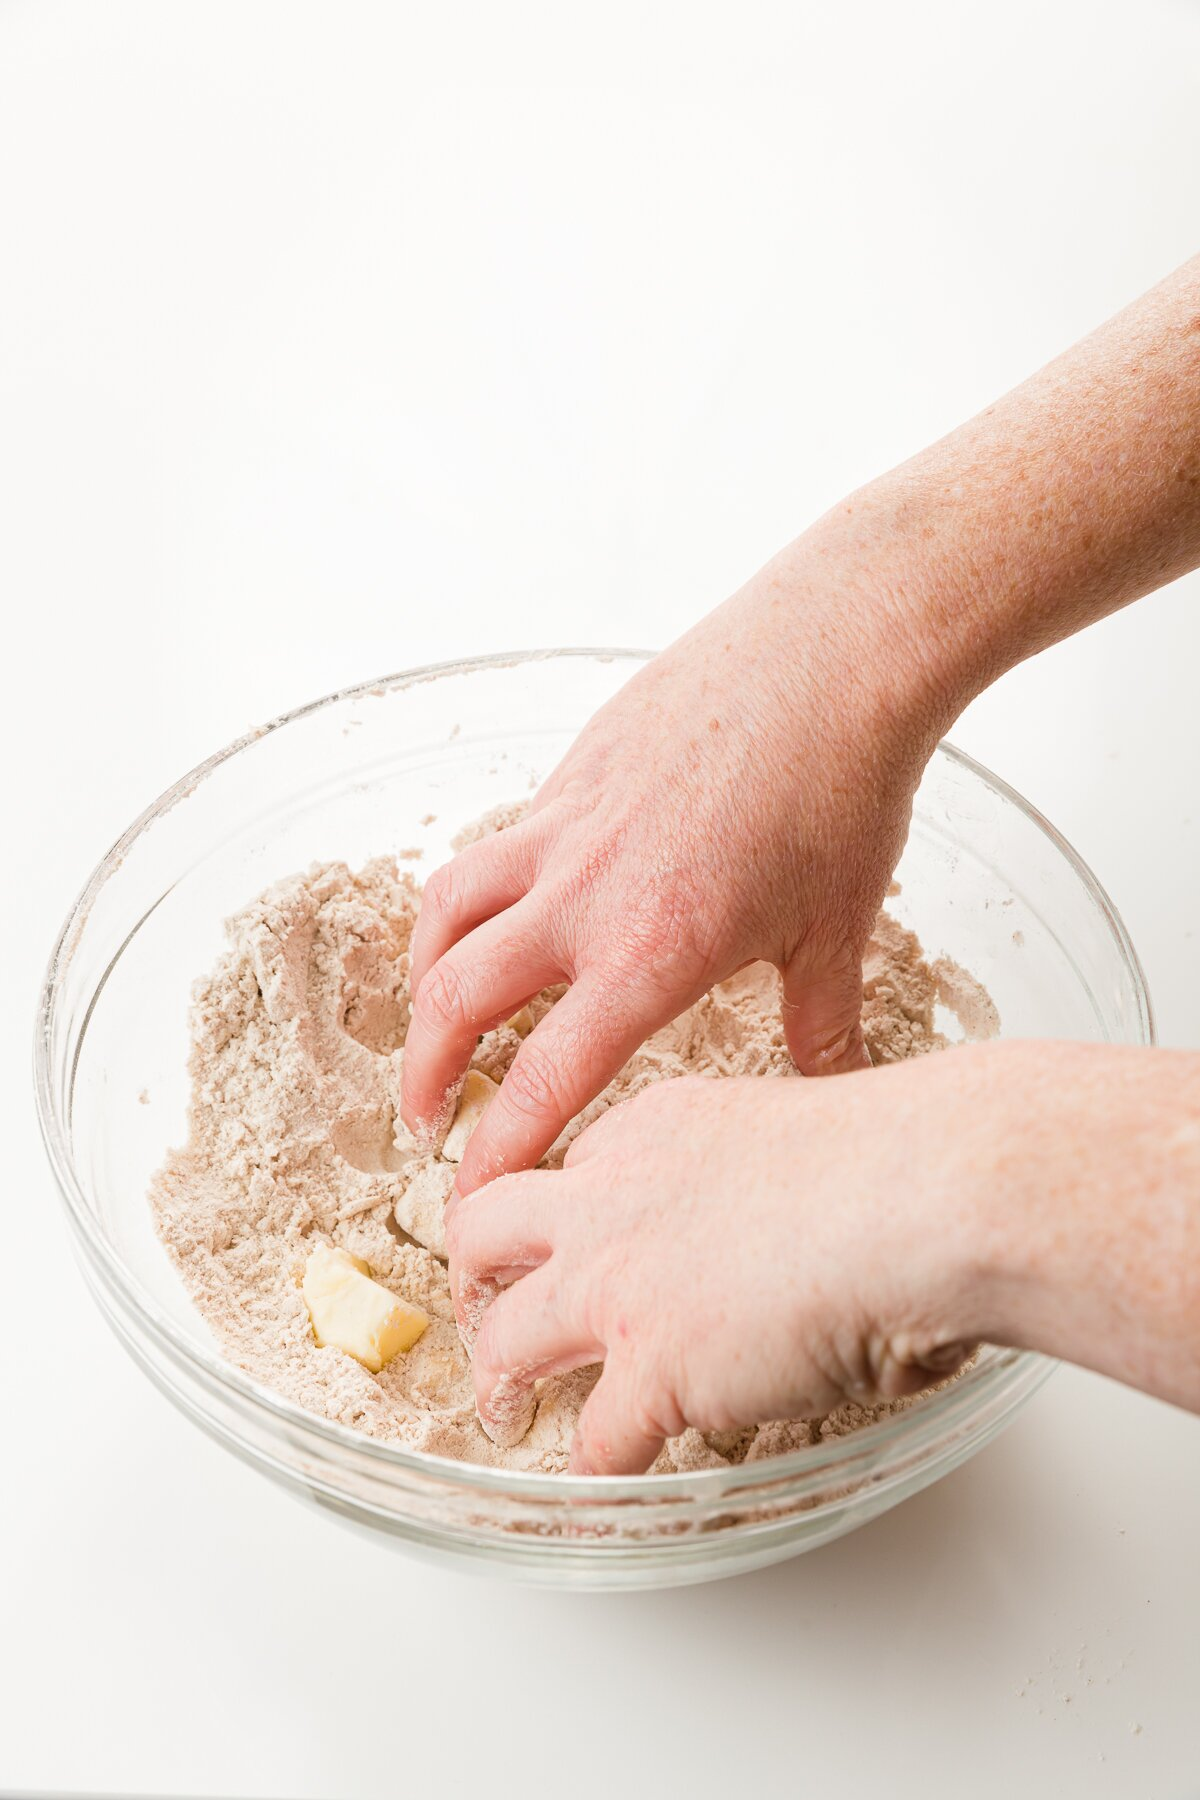 Hands in a glass bowl mixing butter into dry ingredients